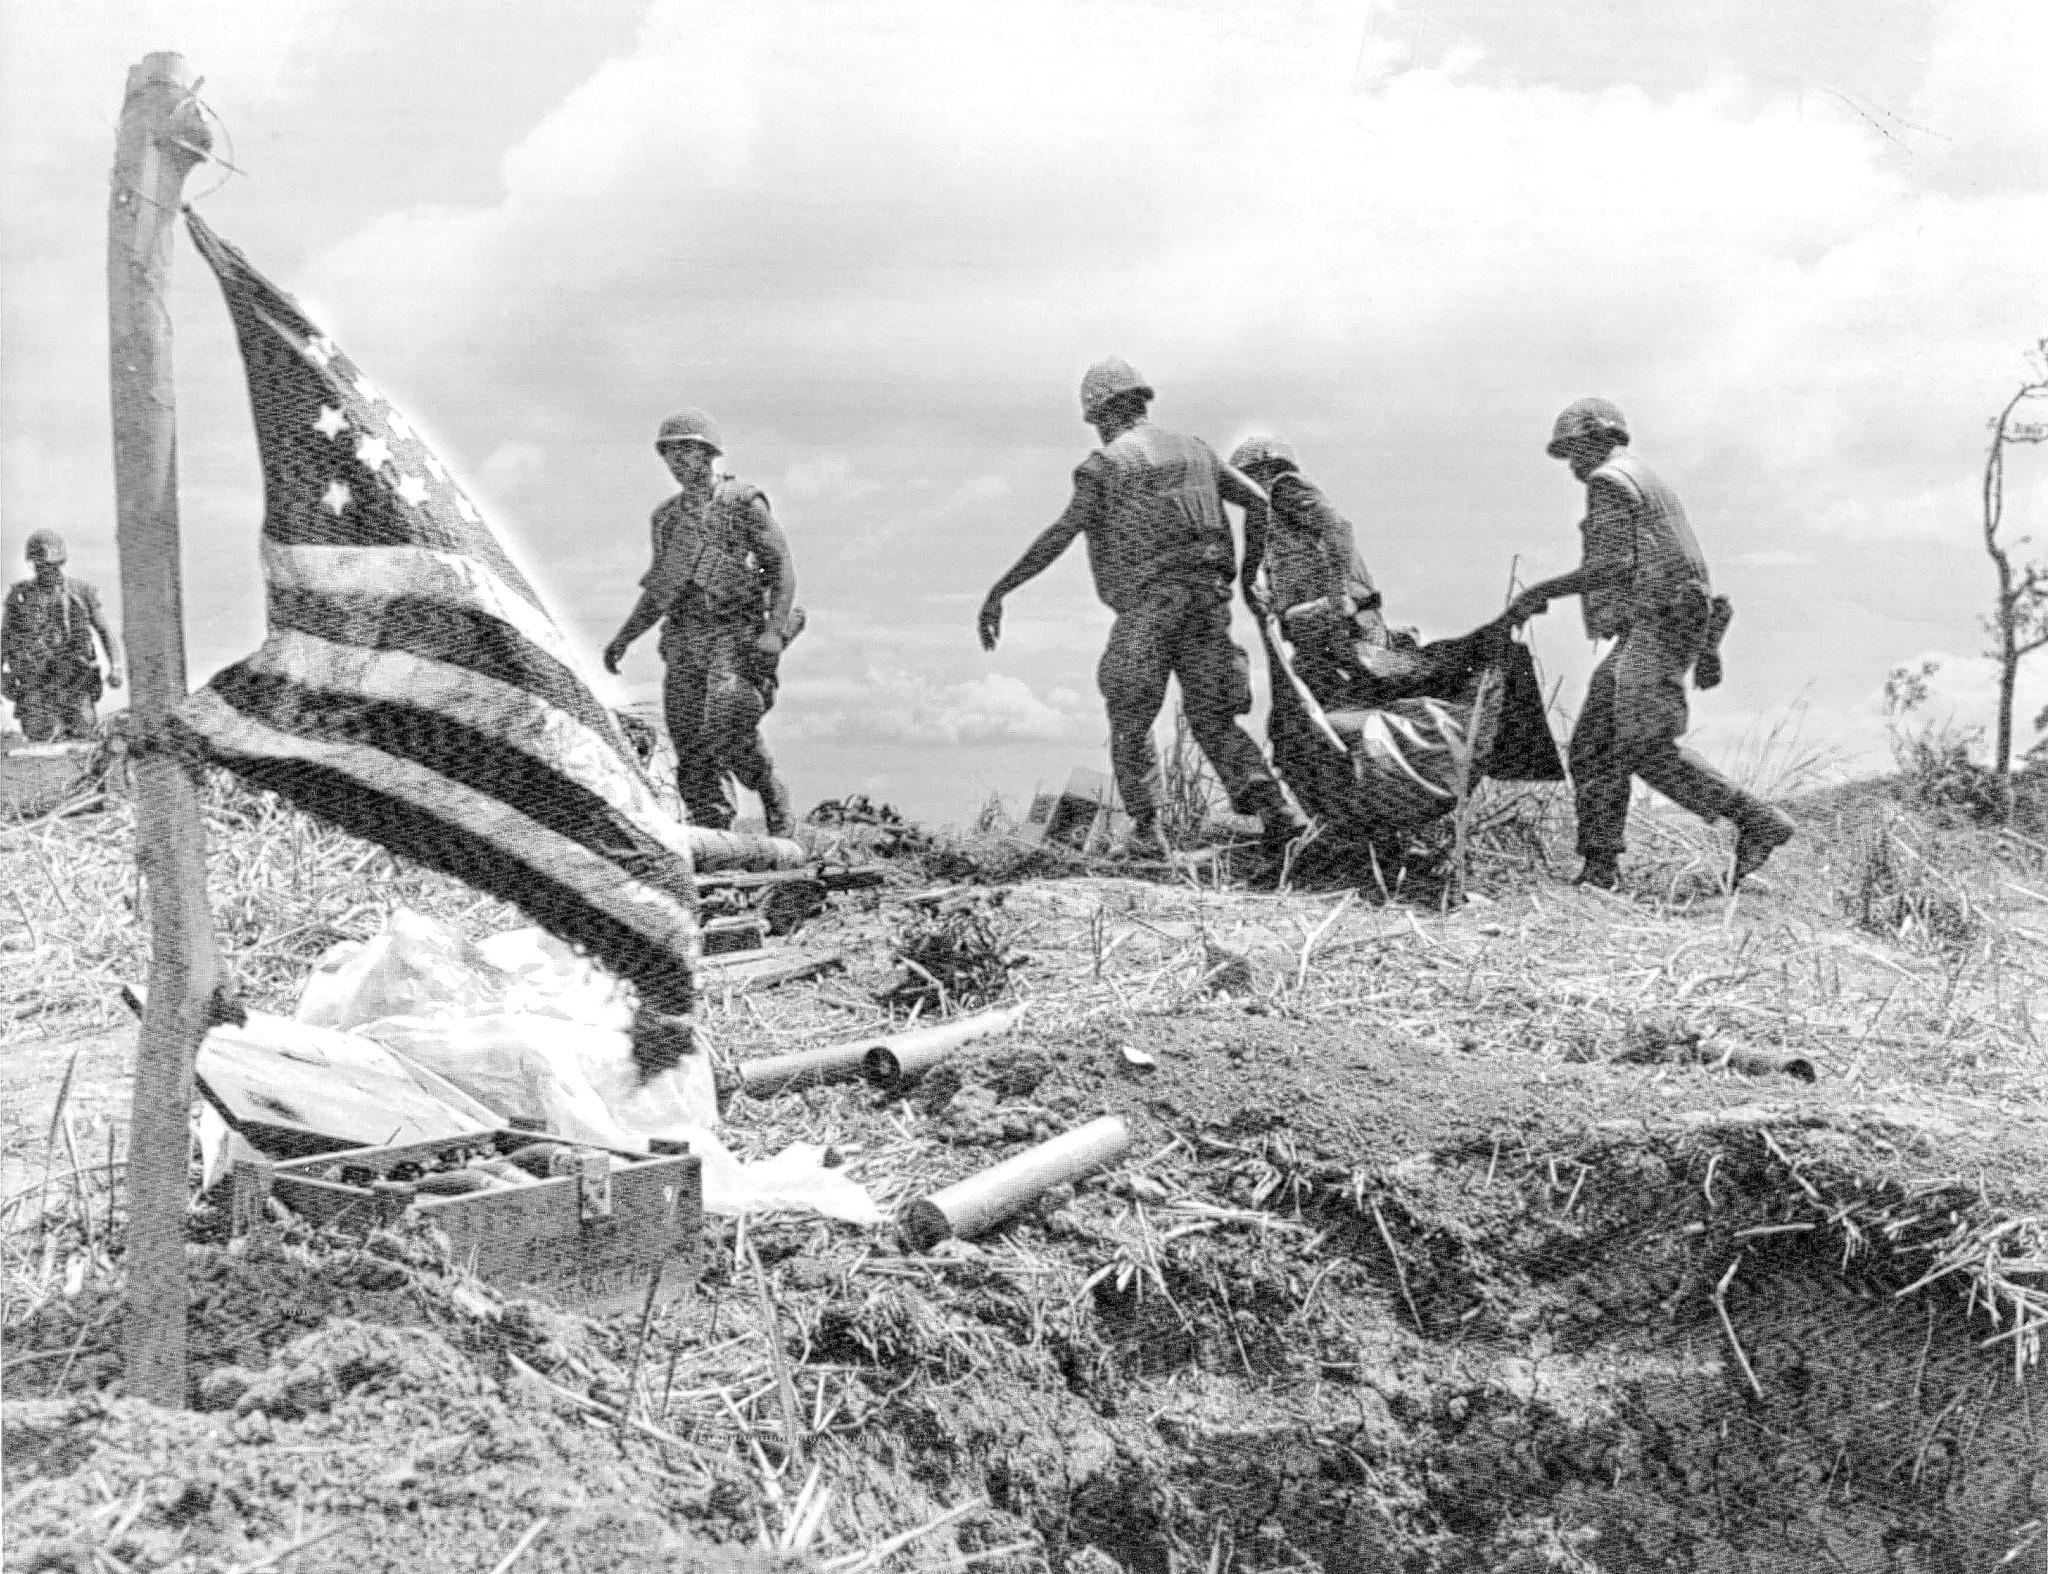 Marines gather bodies of dead comrades atop a battlefield hilltop just south of Khe Sanh in June 1968. Vietnam one photo.